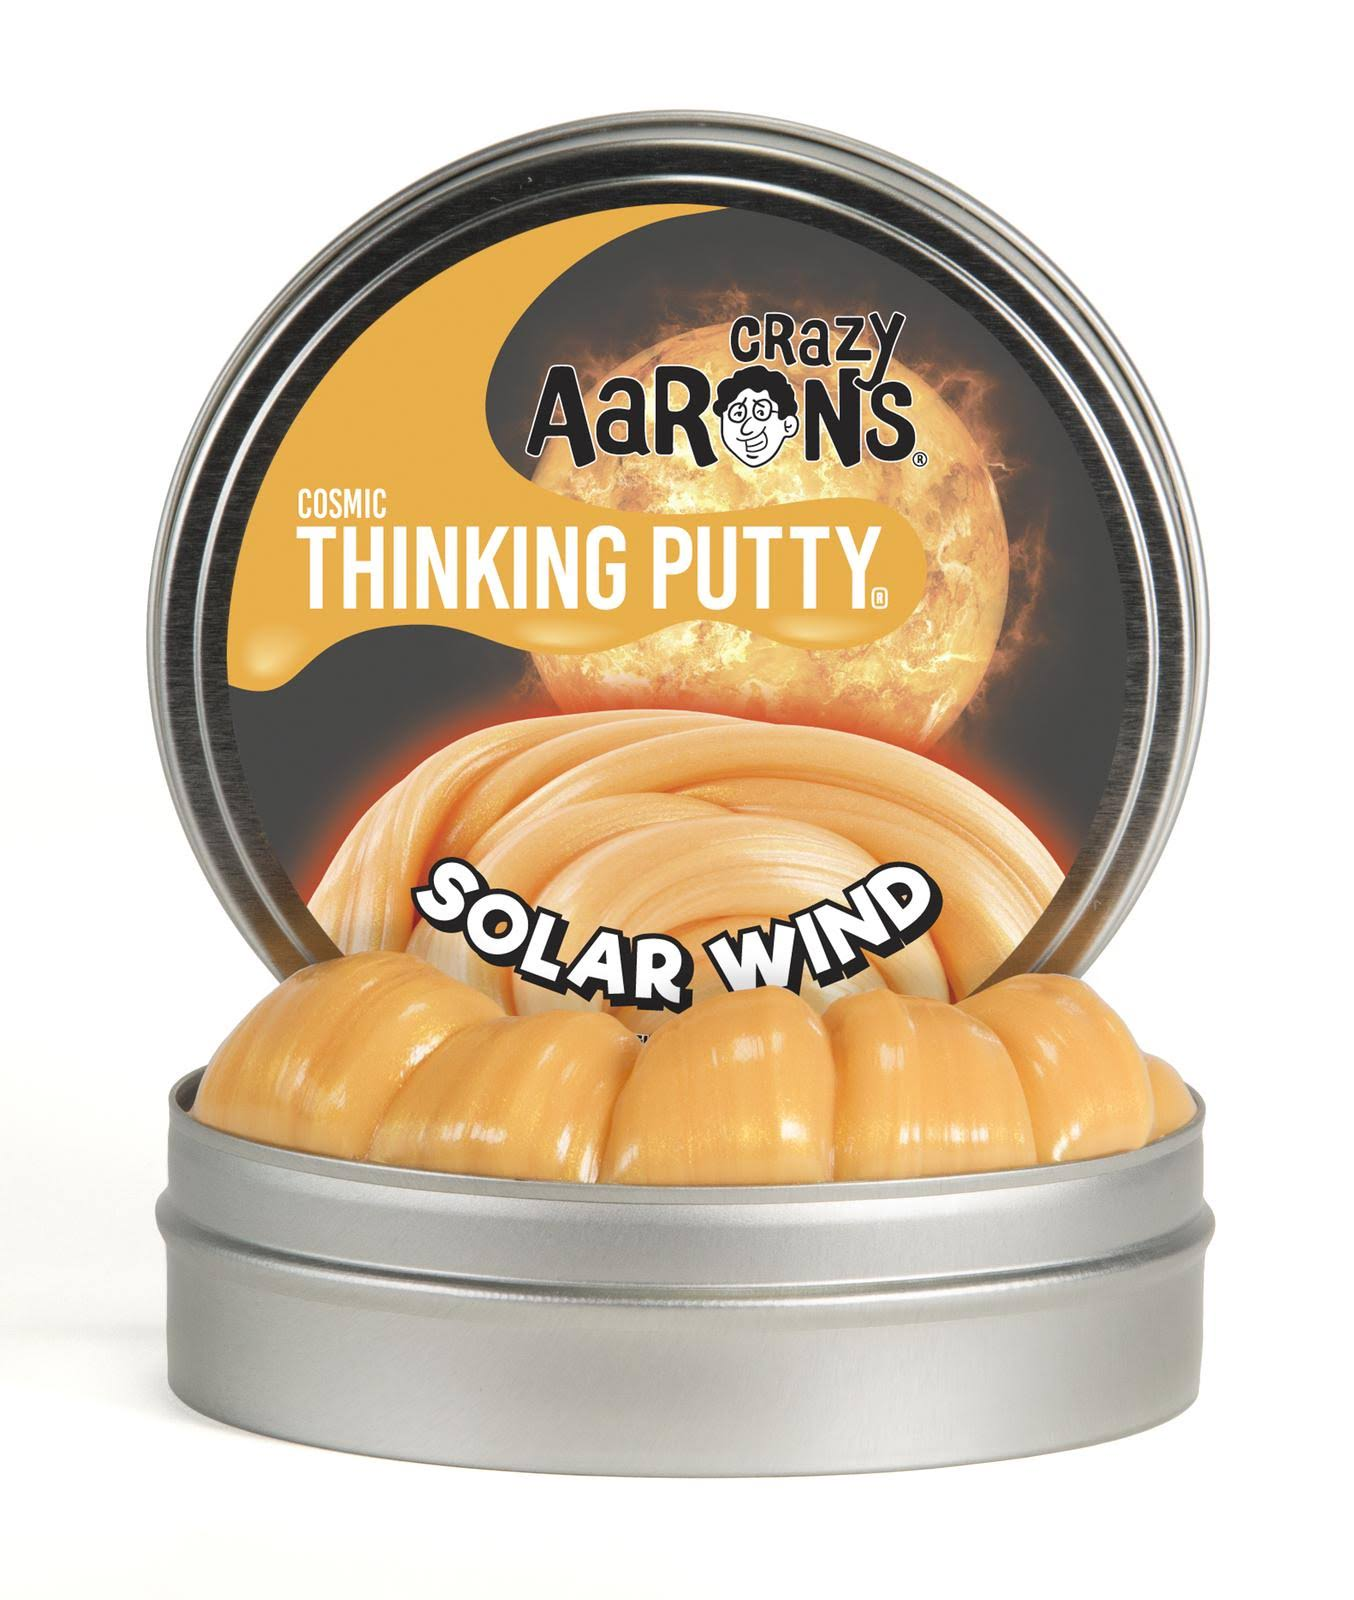 Crazy Aaron's Solar Wind, Cosmic Thinking Putty